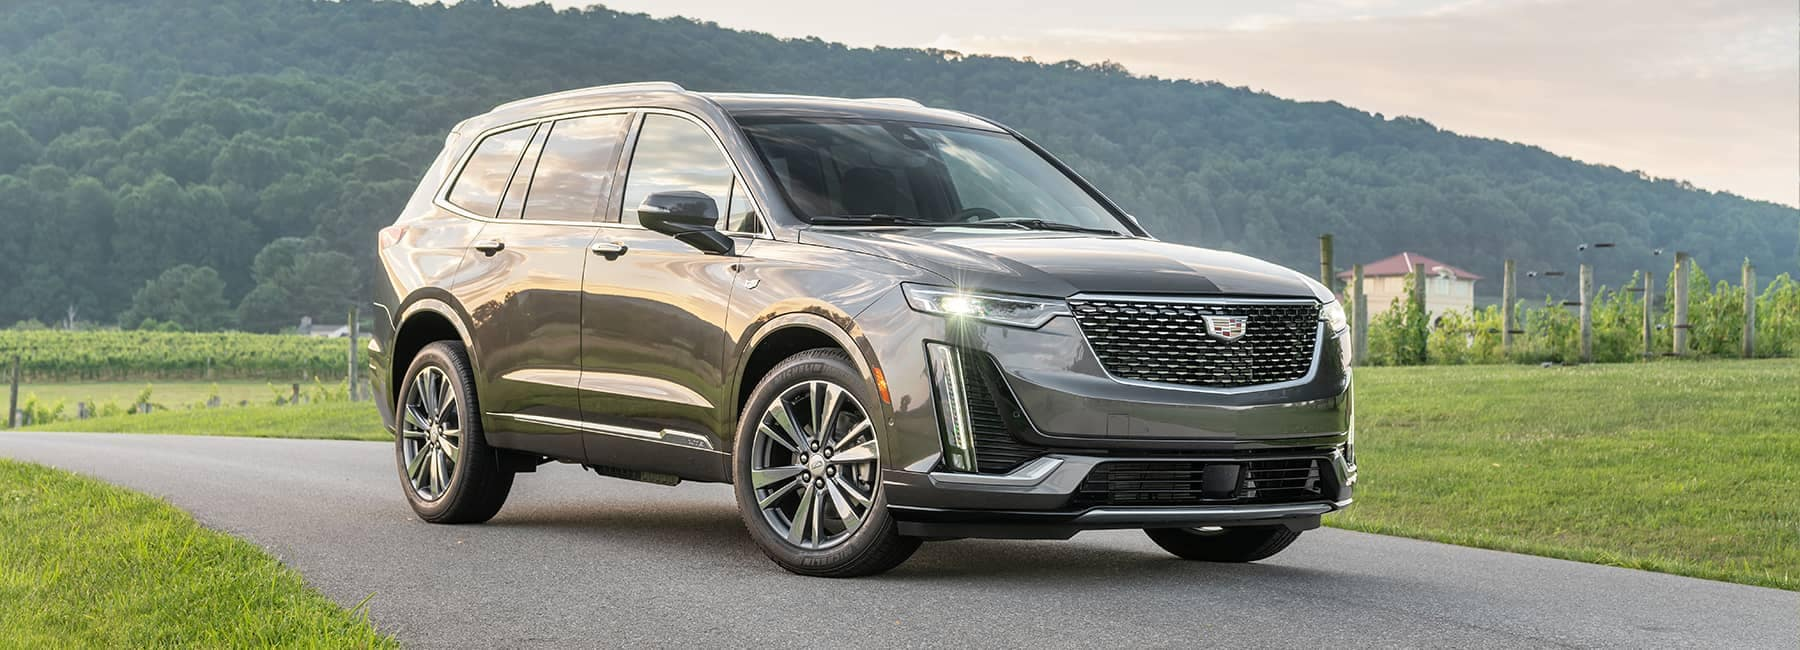 Cadillac XT5 parked next to a nice lawn